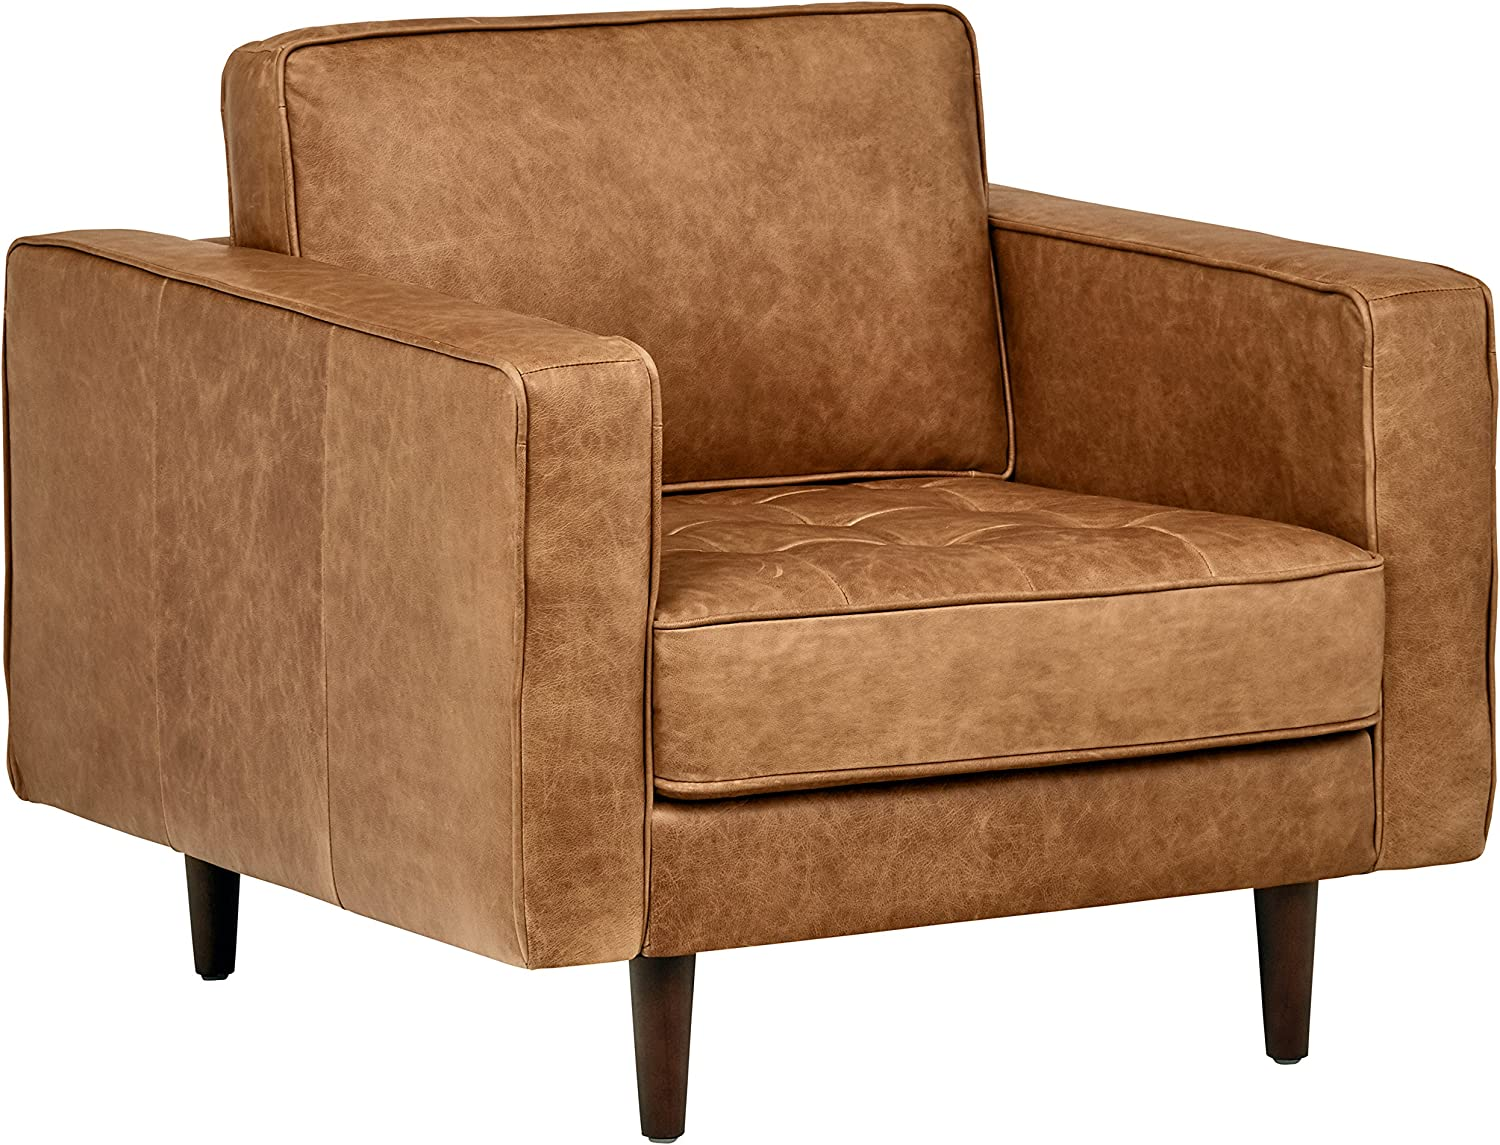 "Rivet Aiden Tufted Mid-Century Modern Leather Accent Chair, 35.4""W, Cognac"